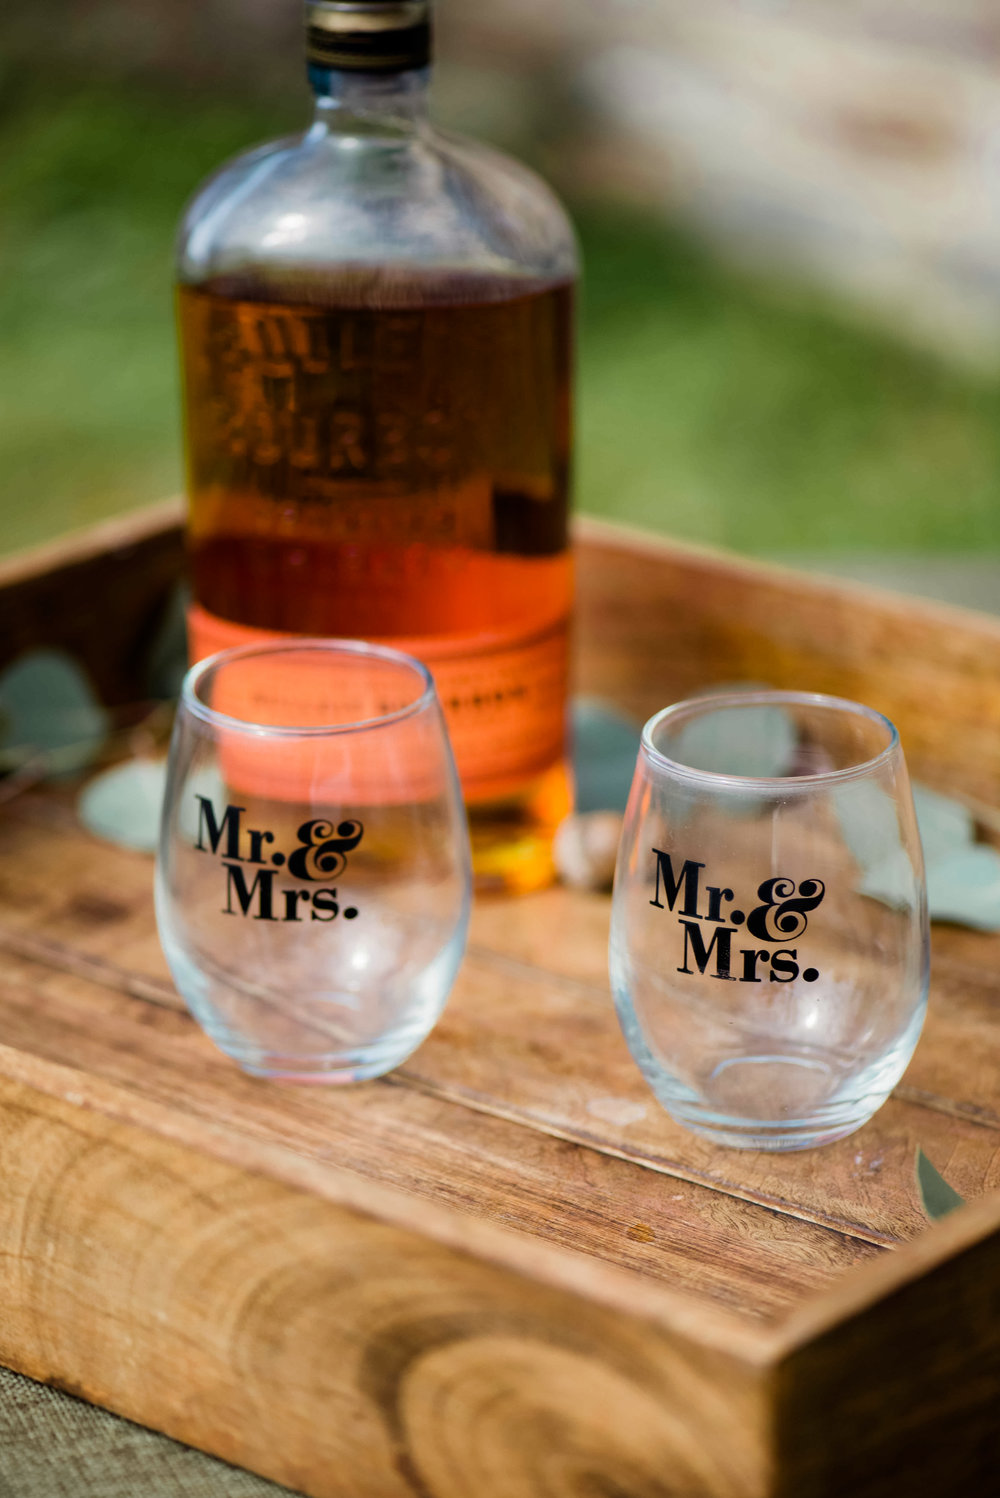 The most adorable Mr. and Mrs. wedding glasses with a side of Kentucky bourbon! Perfect addition to any winter wedding in the south!